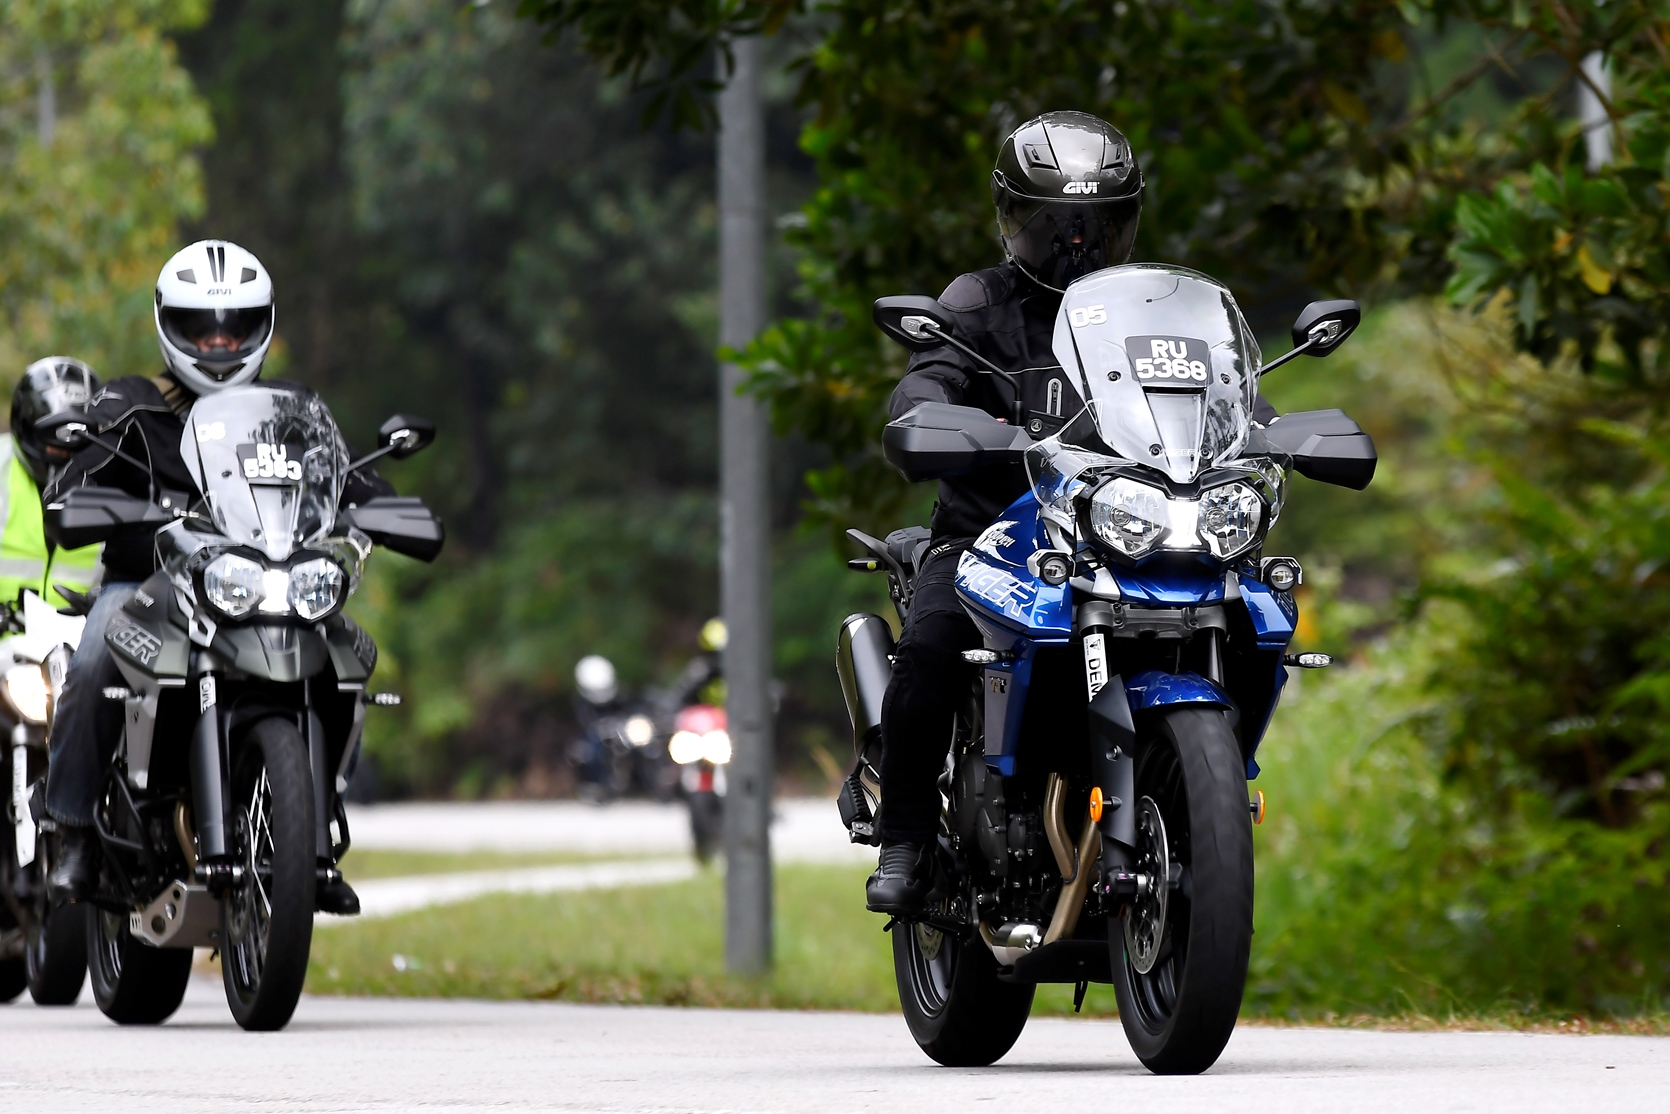 Two Of The New Triumph Tiger 800 Adventure Bikes Being Tested By The